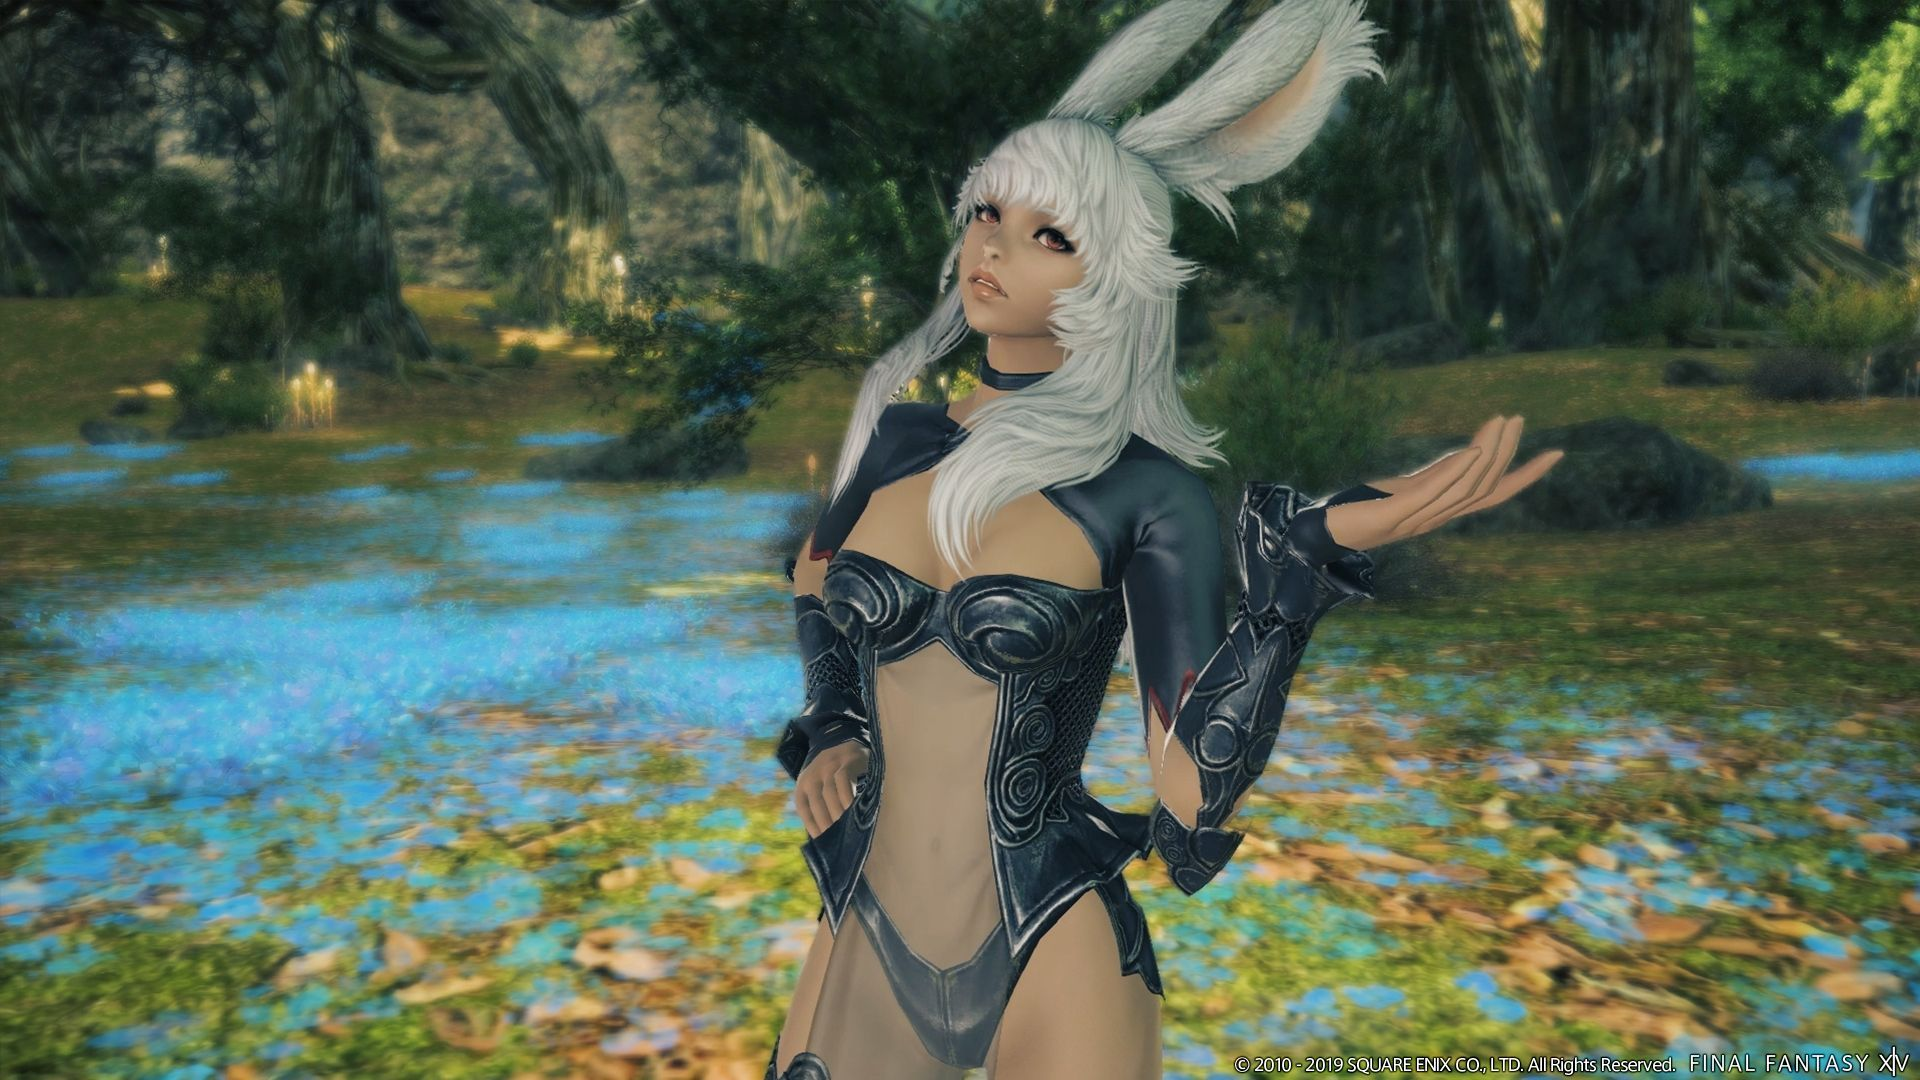 Final Fantasy XIV: Shadowbringers Viera